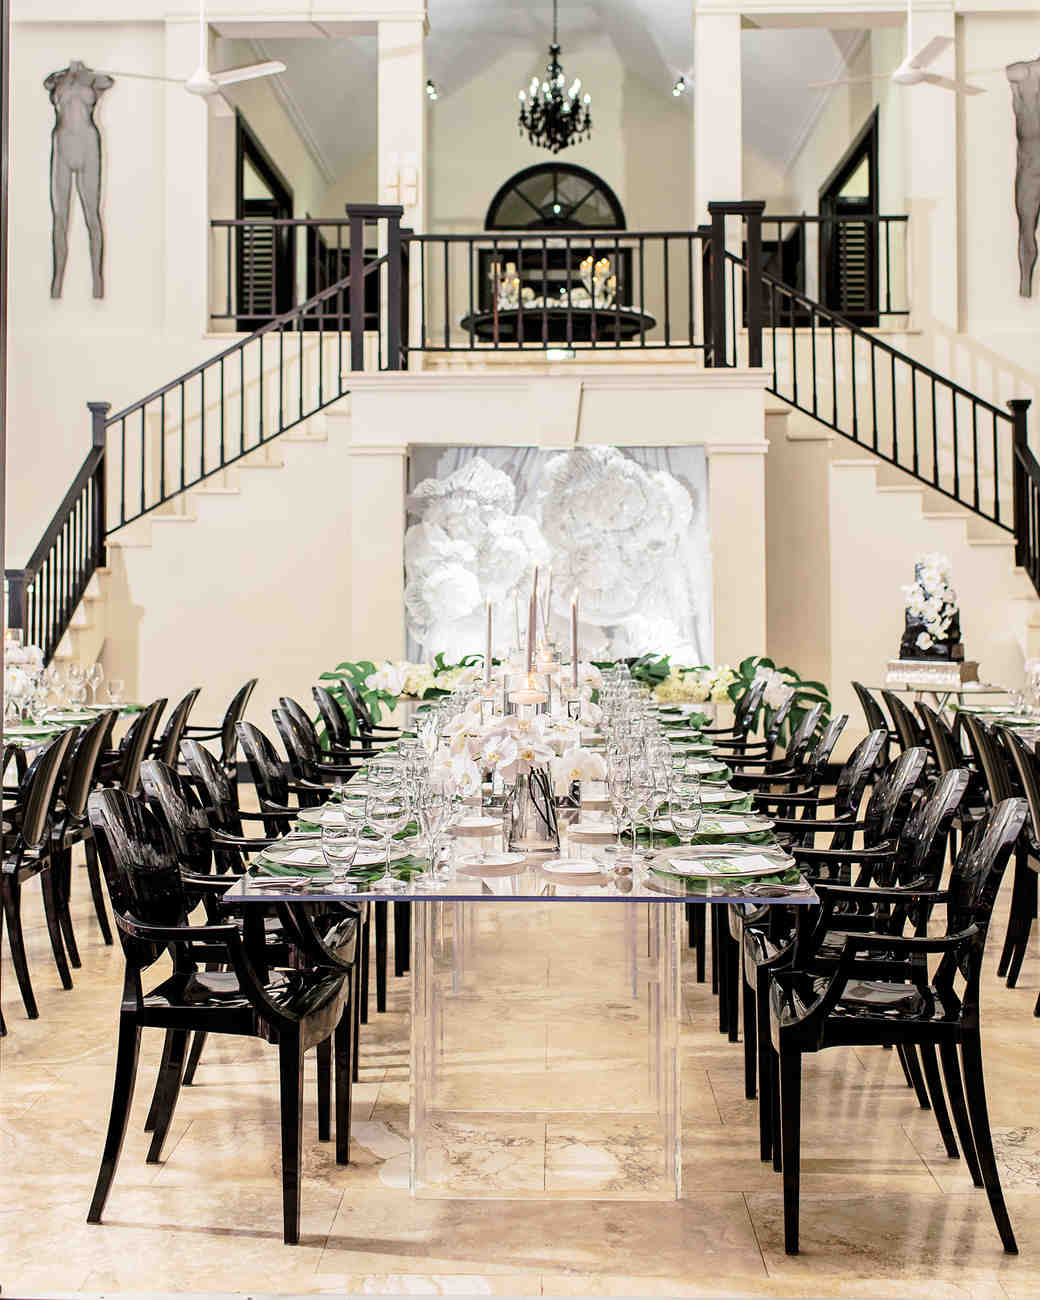 melissa leighton wedding reception long table with black chairs